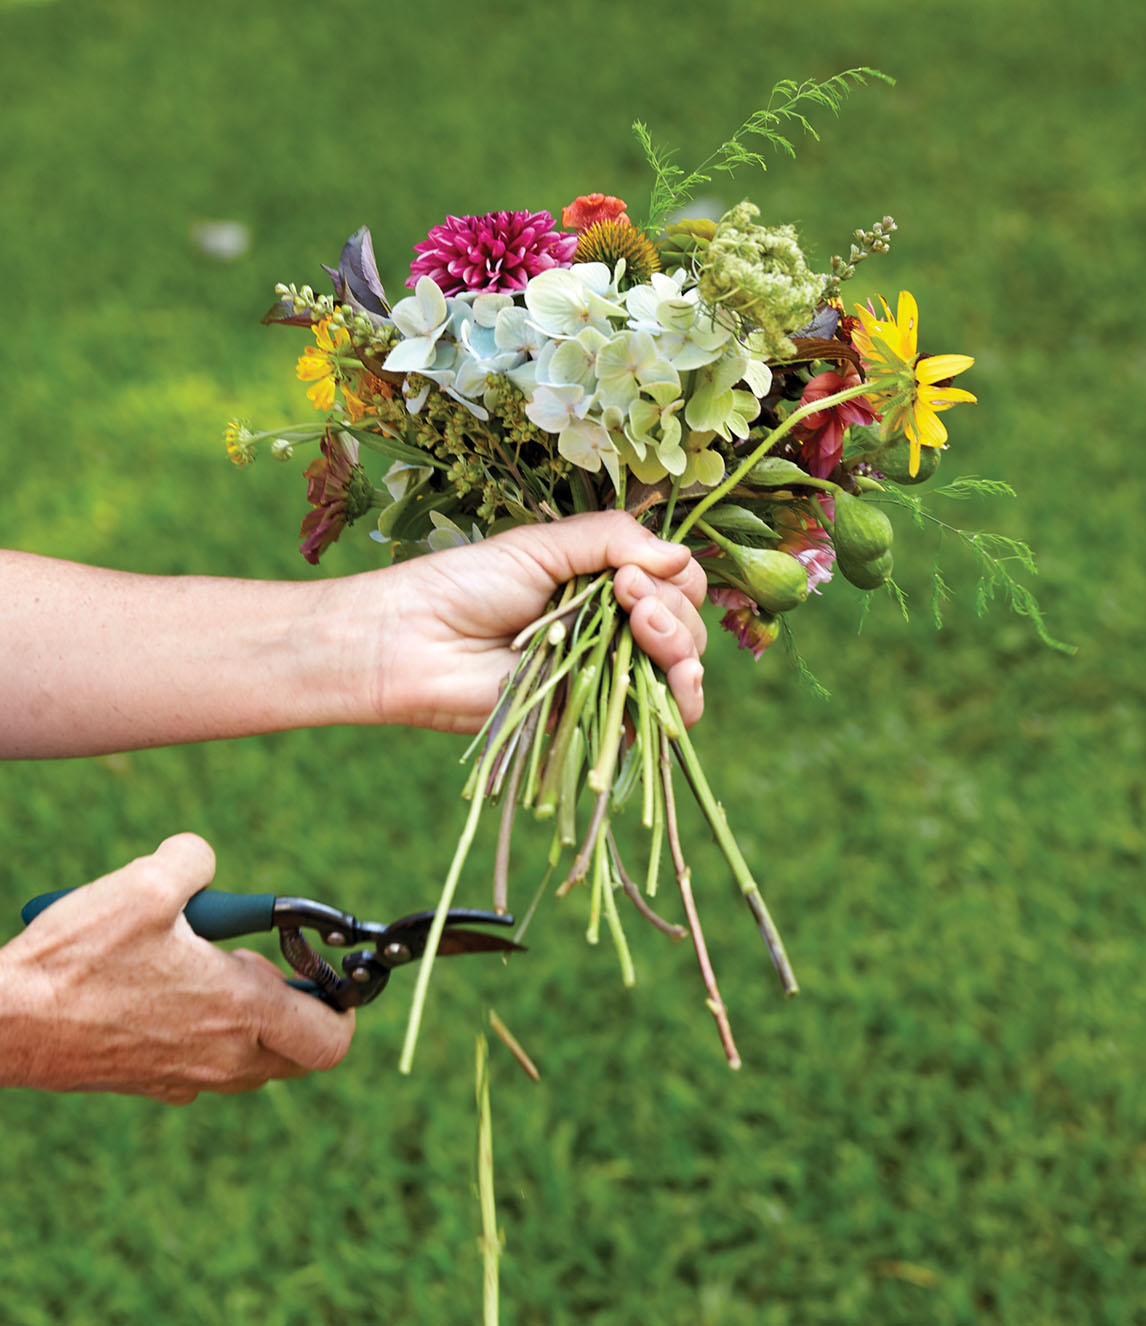 Kappi Naftel uses clippers to trim bouquet stems